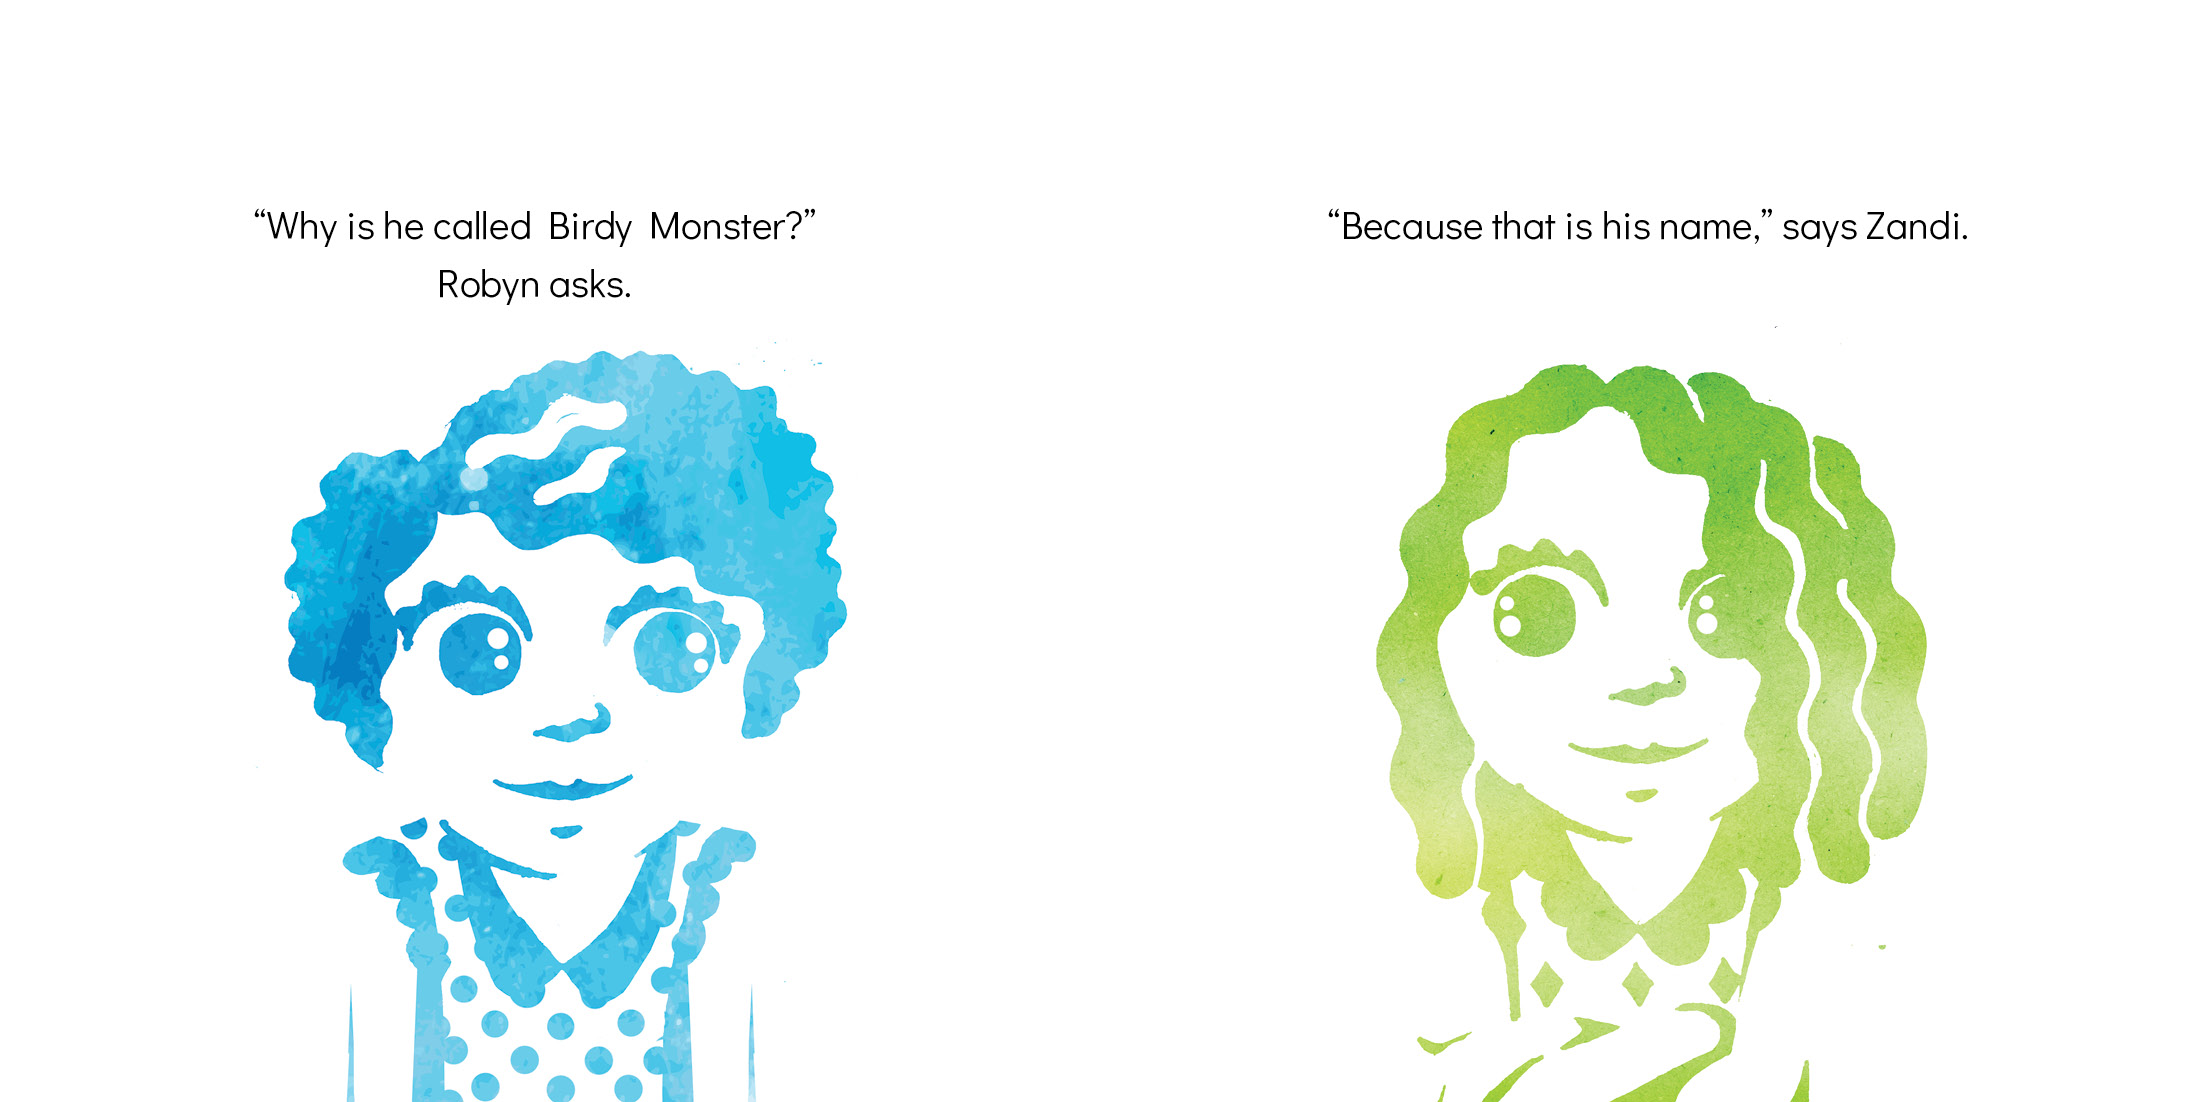 Zandi and Birdy Monster by Marie-Louise Rouget, Hannes